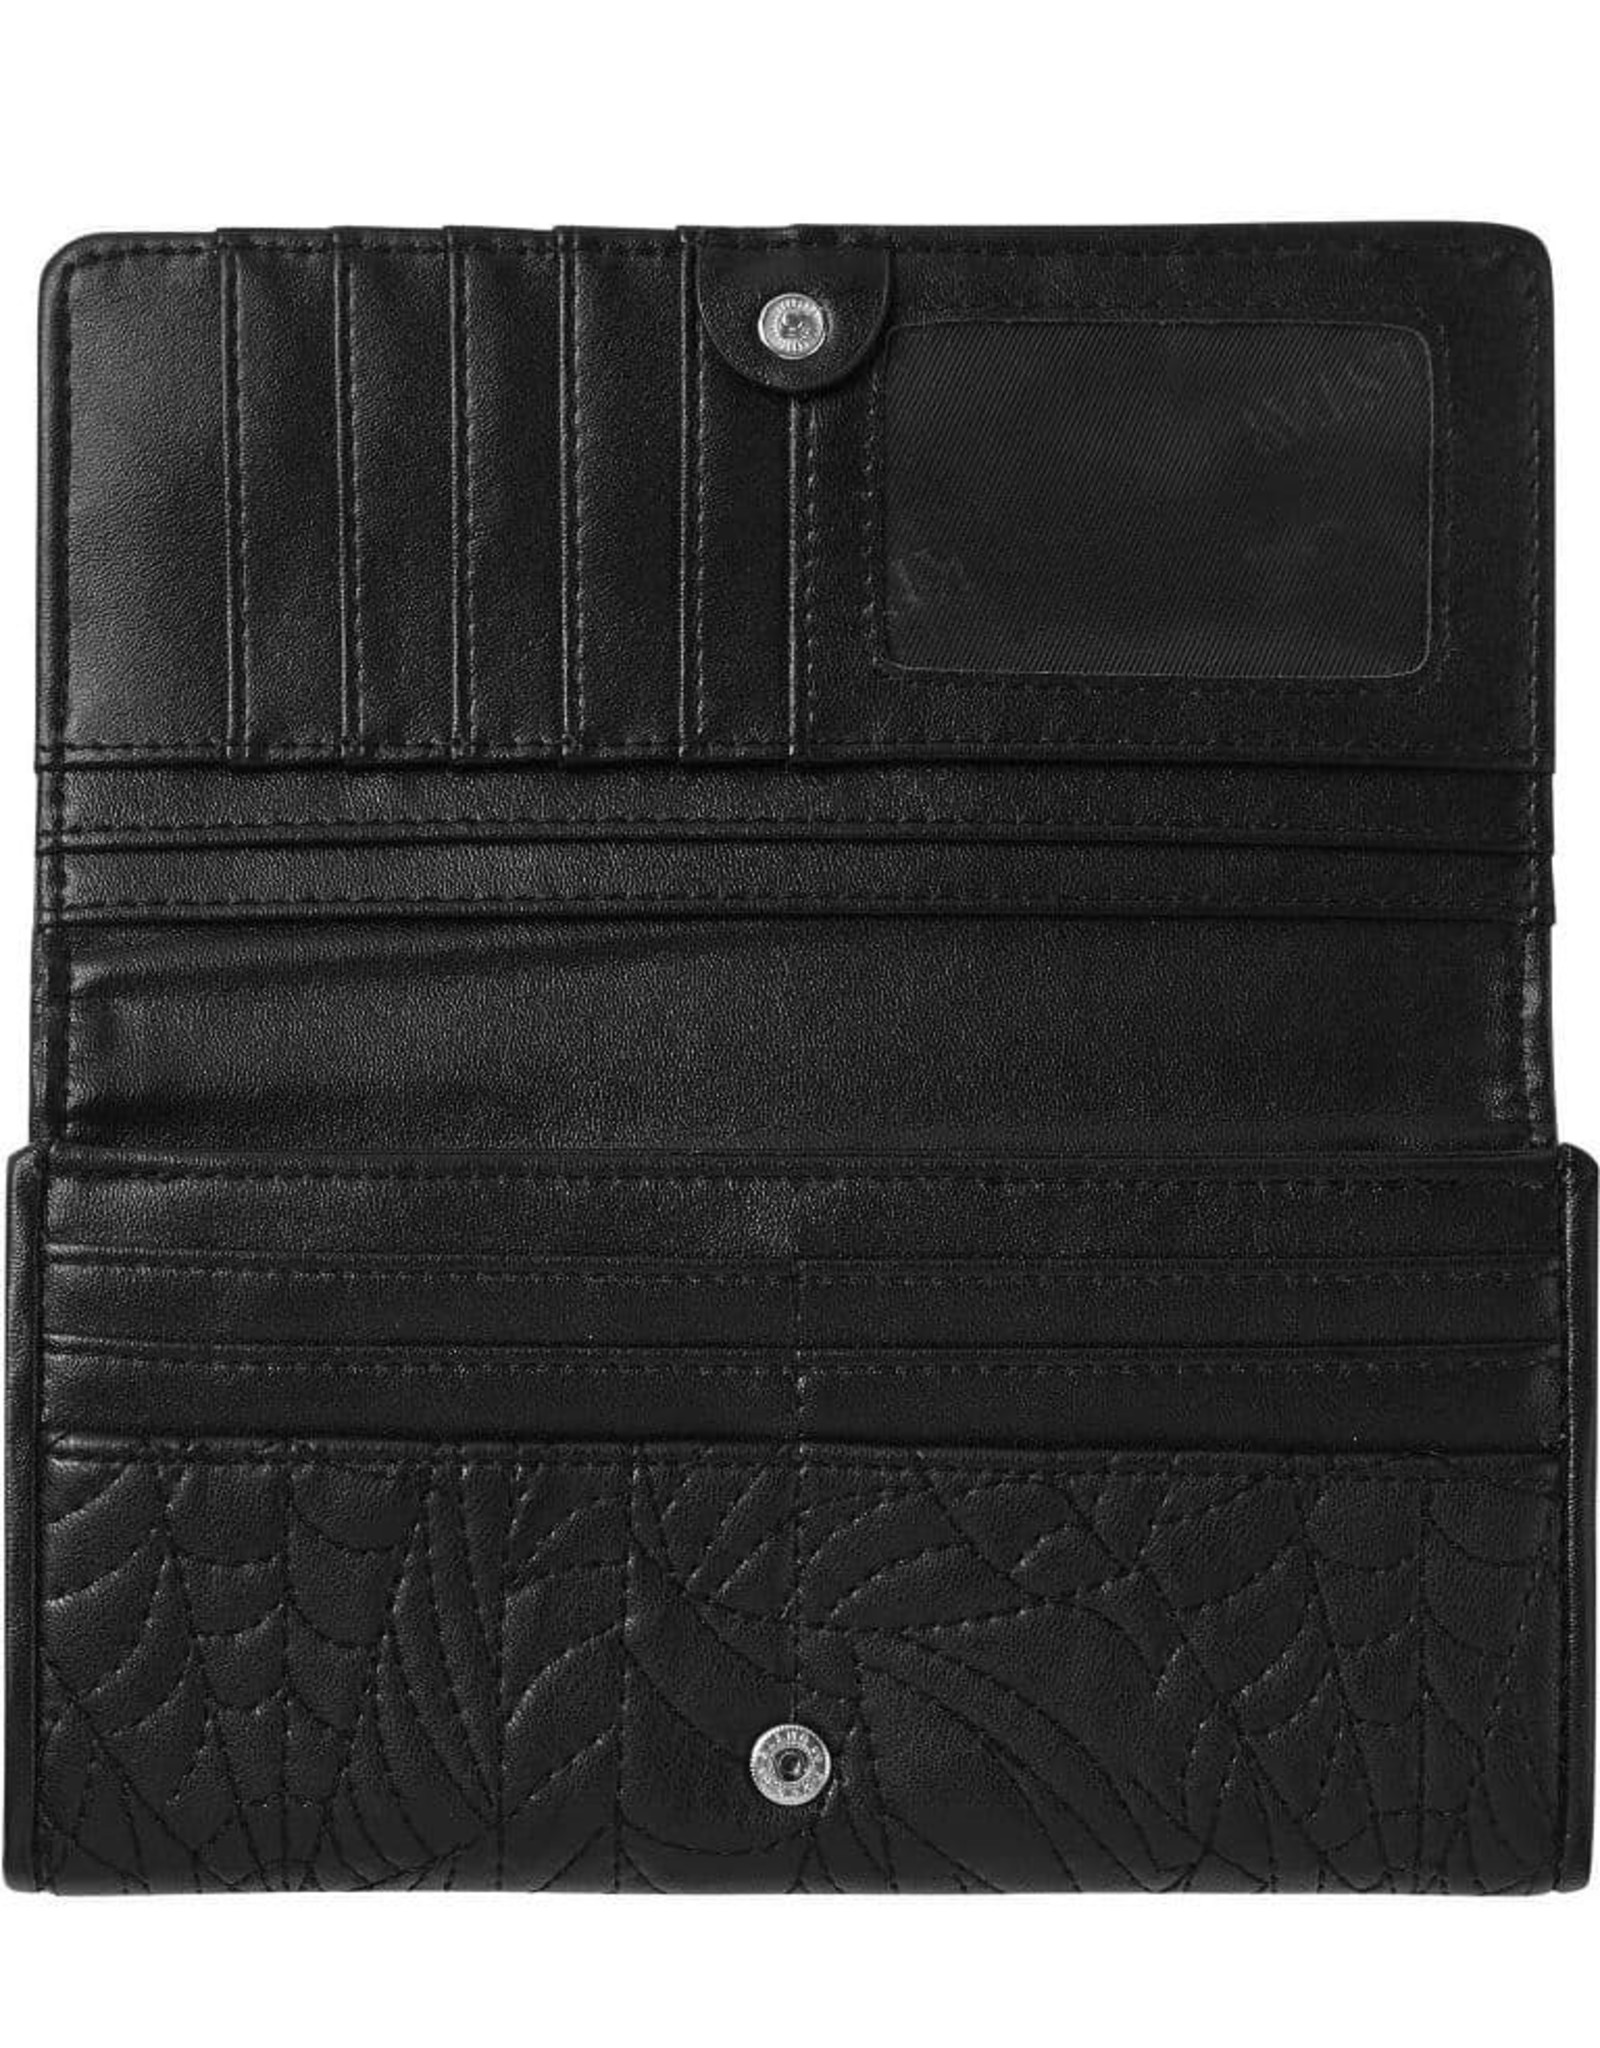 Killstar Merchandise wallets - Killstar wallet Webutant